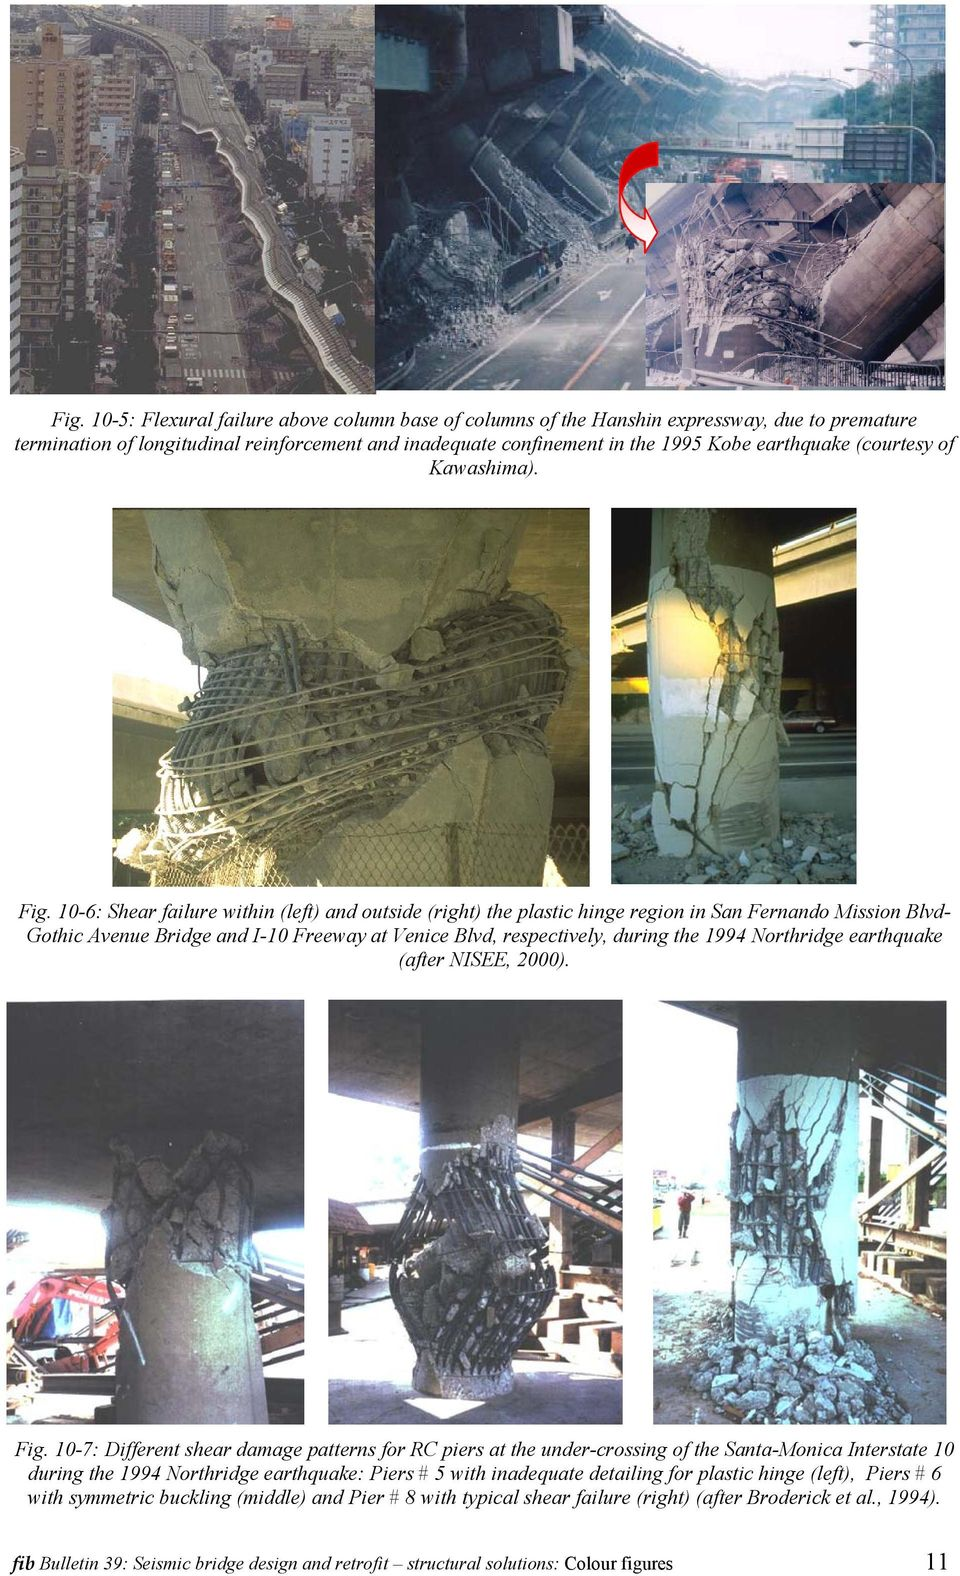 10-6: Shear failure within (left) and outside (right) the plastic hinge region in San Fernando Mission Blvd- Gothic Avenue Bridge and I-10 Freeway at Venice Blvd, respectively, during the 1994